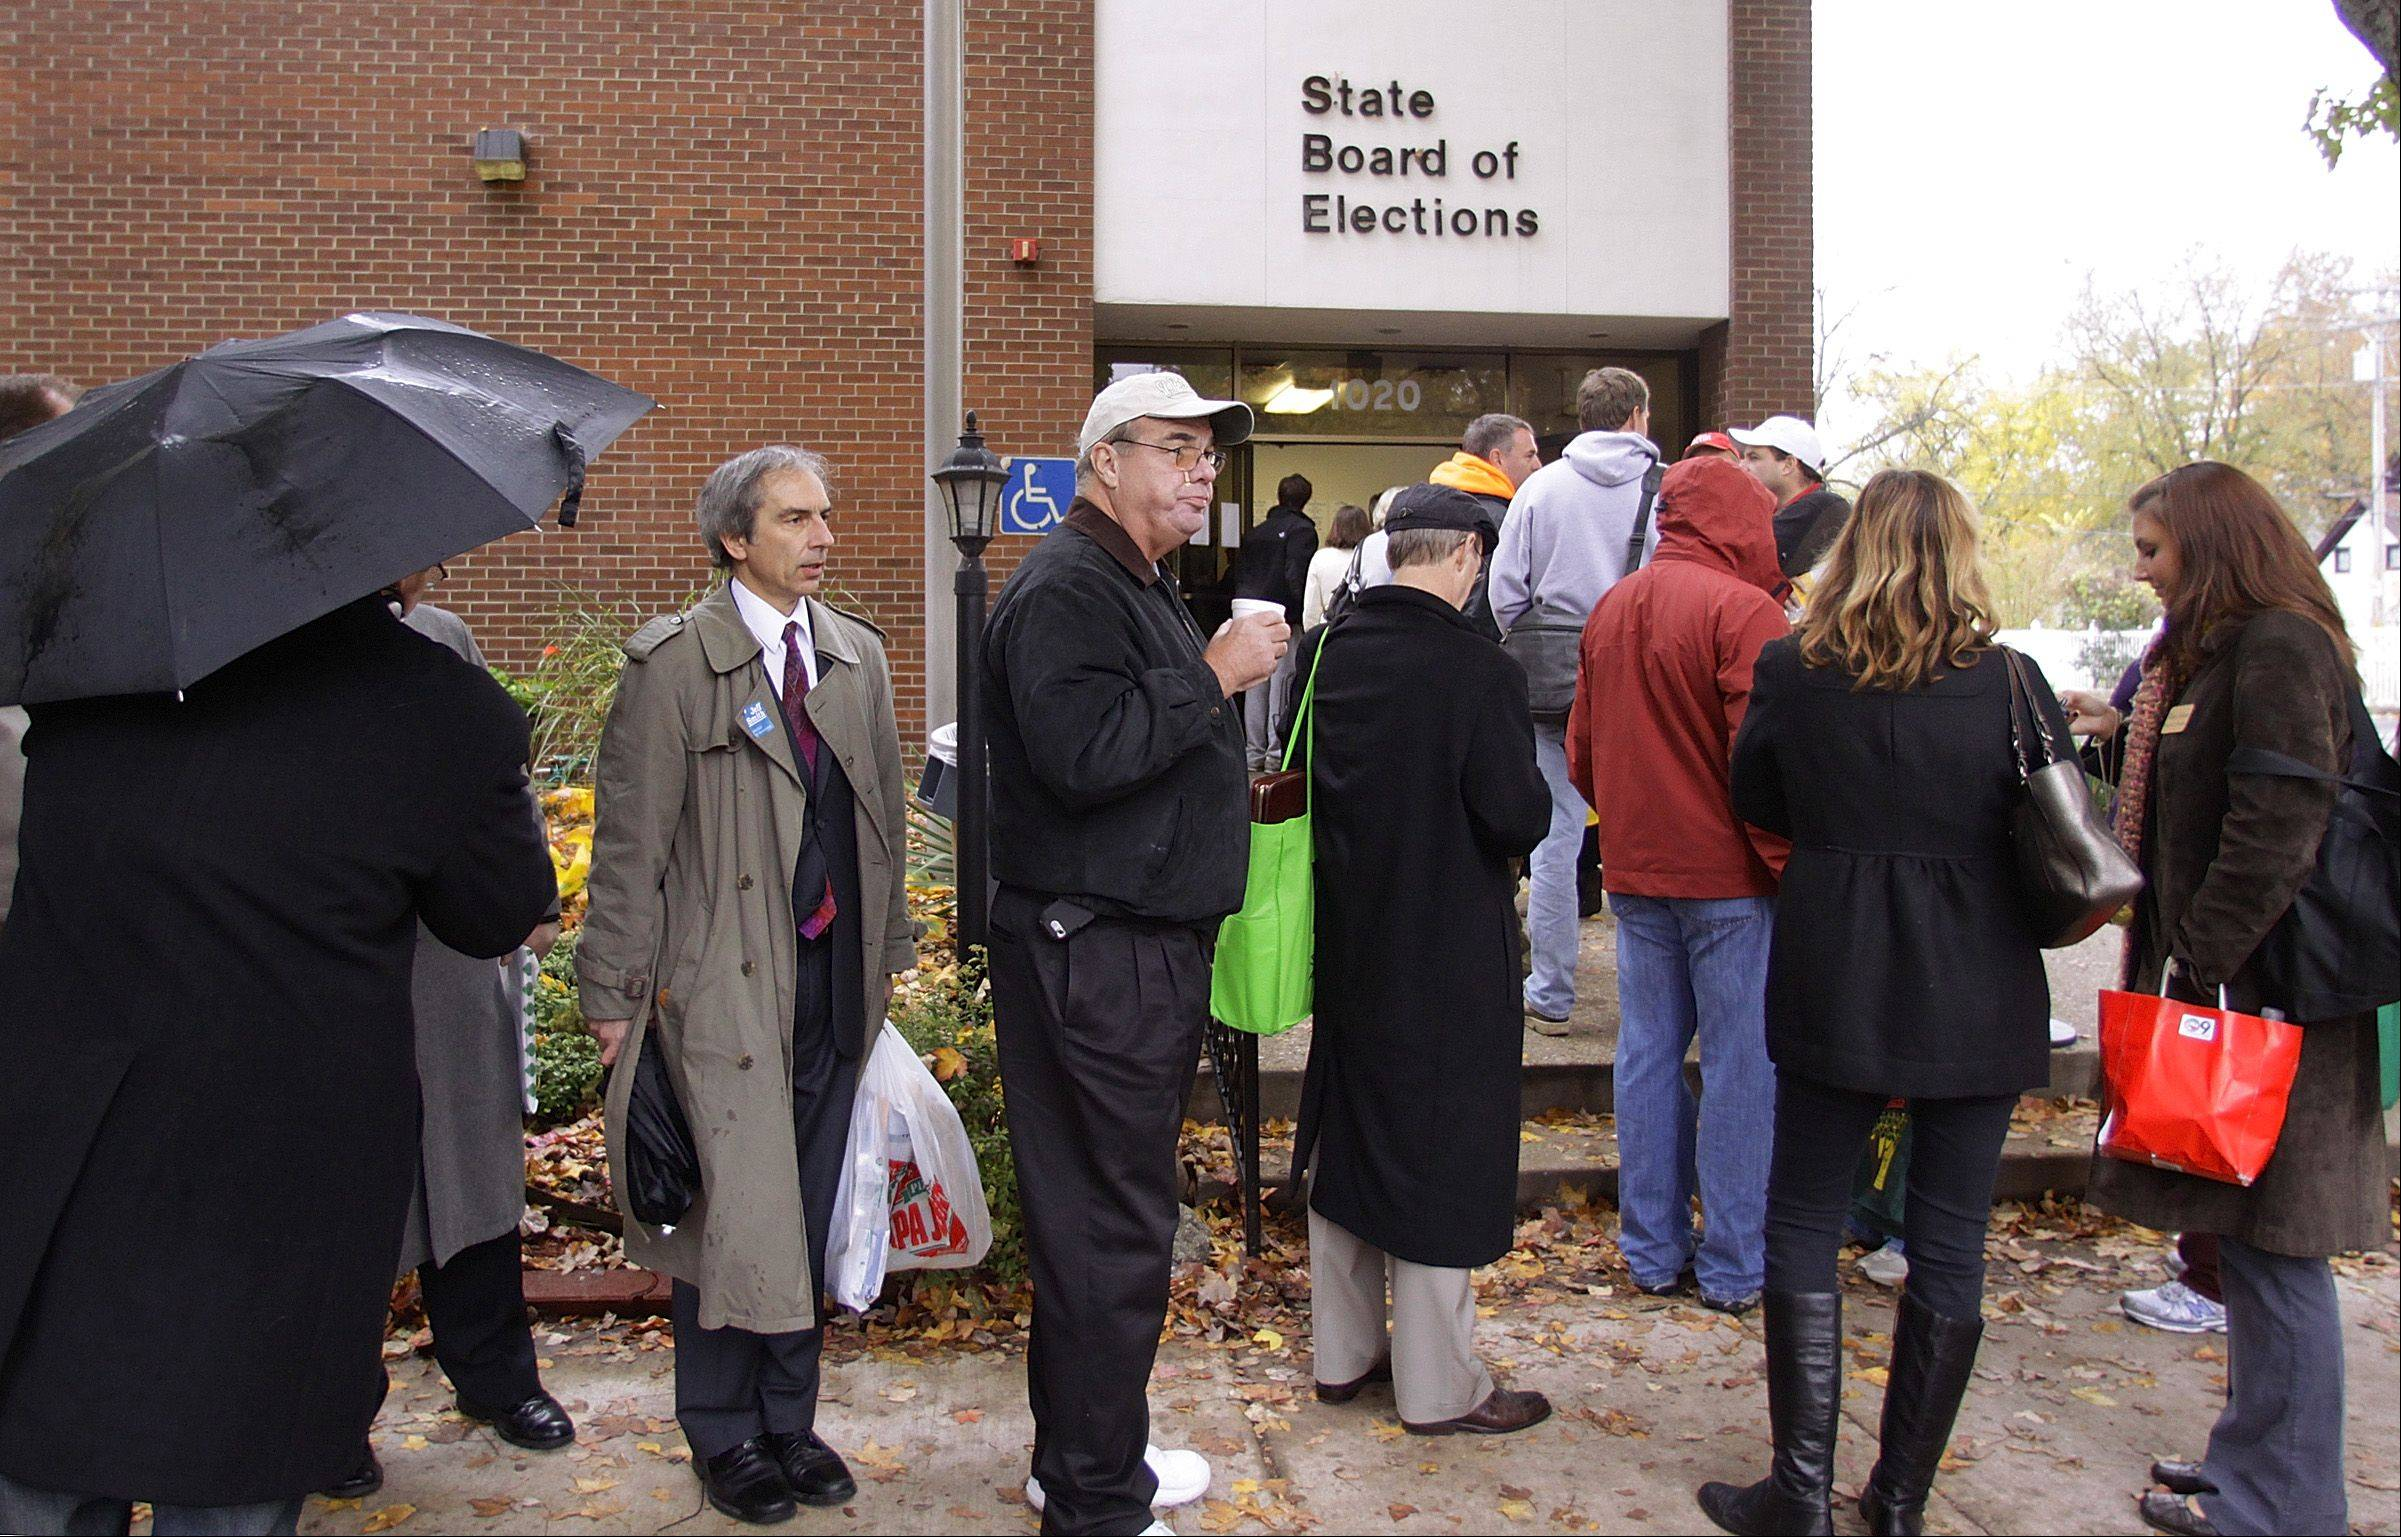 Candidates stand in line outside the Illinois State Board of Elections in Springfield to get on the ballot. If they don't file financial statements on time, they can face fines but often get them reduced or eliminated by the board.